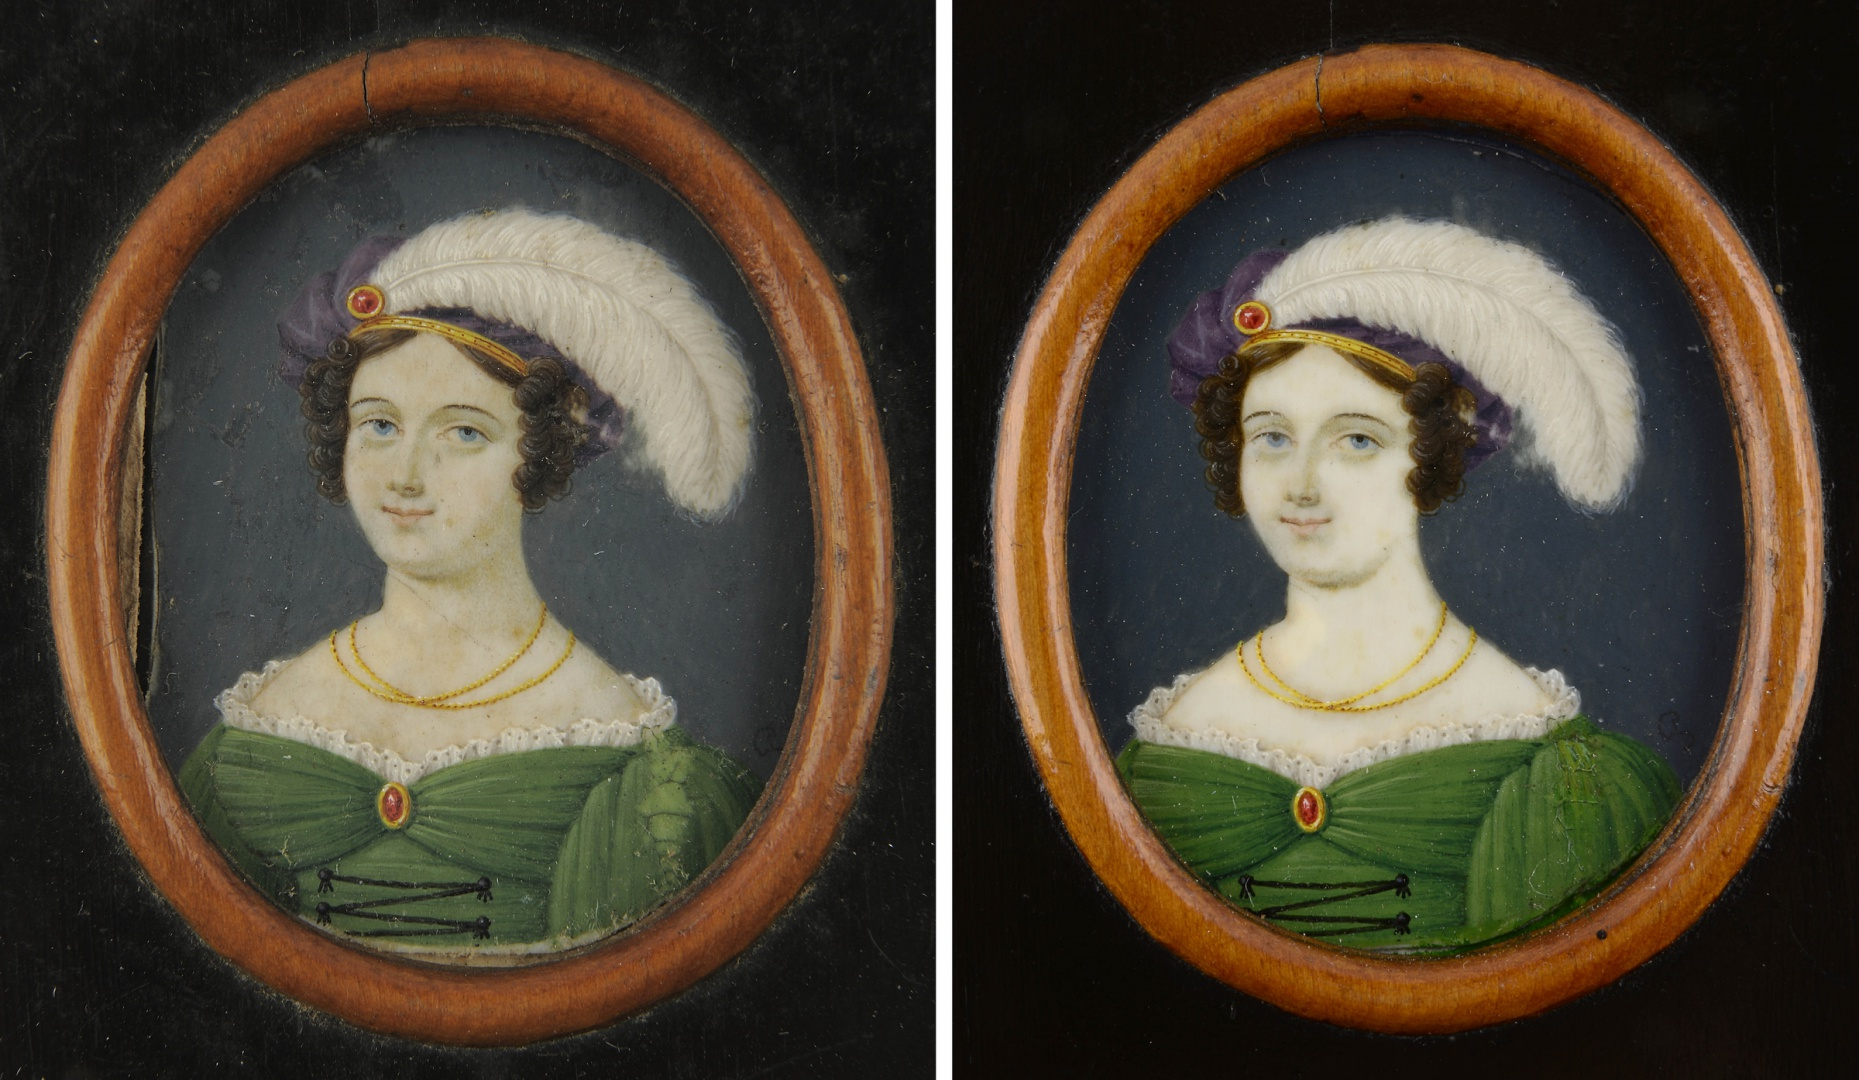 ill 3. Sara Magdalena Paetzen's portrait 5.0 × 4.5 cm (VM VM 4386 K). Bone, gouache. On the left (before conservation) - the left edge of the bone plate of the miniature was ca 0.3 cm broken and had been supported with paper. The surface of the painting was dirty and losses of paint occurred. On the right - the miniature after conservation.